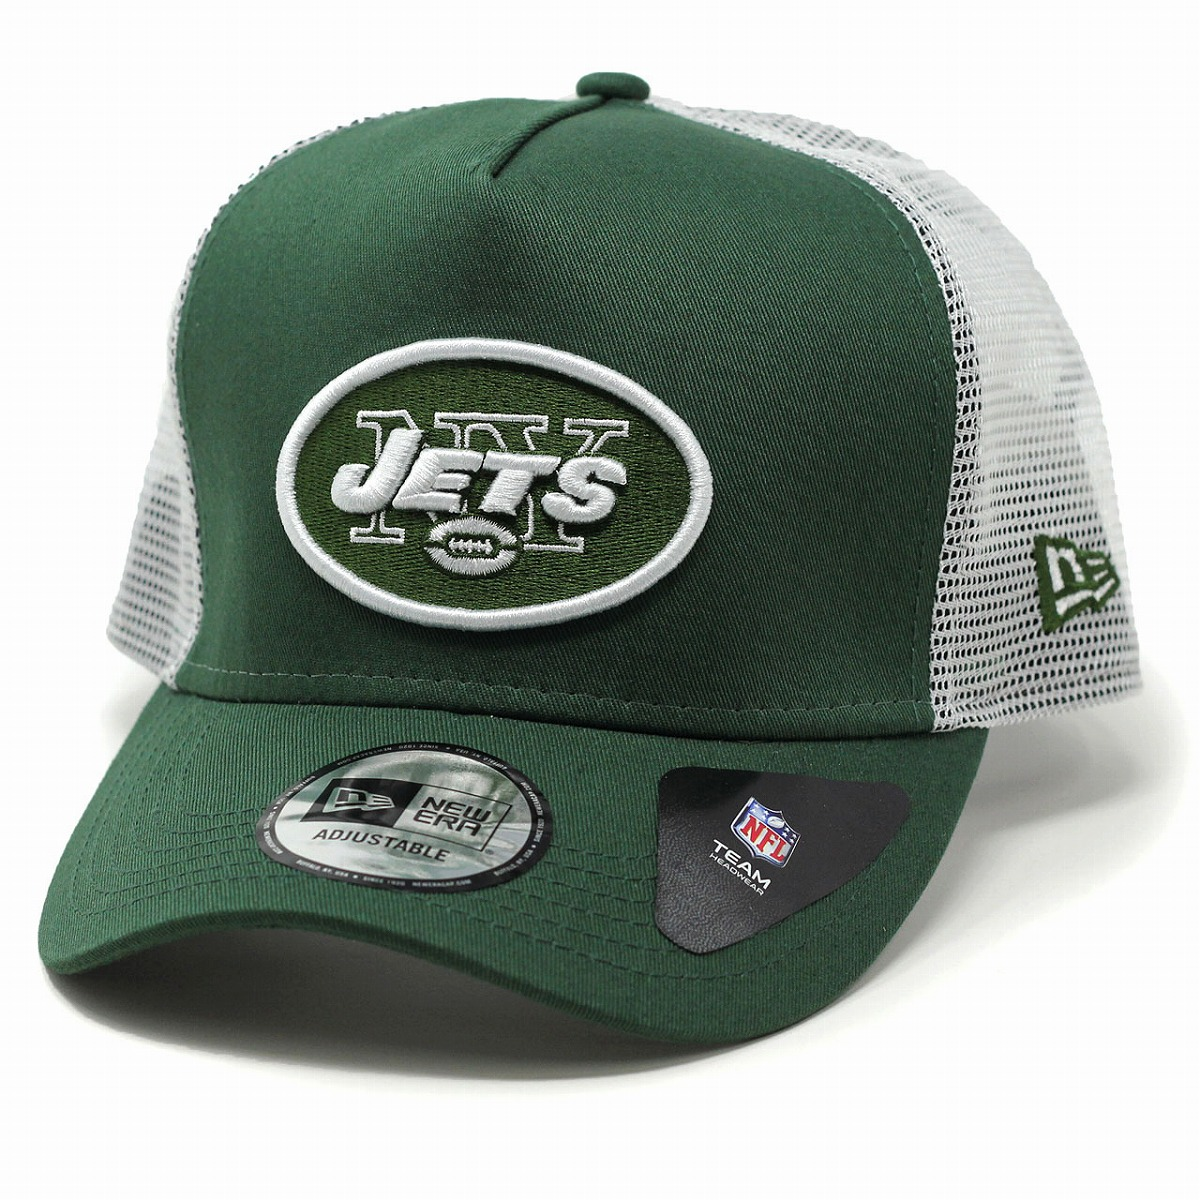 reputable site f6813 445d1 NEWERA NFL New York Jets new gills constant seller 9FORTY D-Frame Trucker  cap men mesh cap Lady's hat / green silane fatty tuna green team color ...